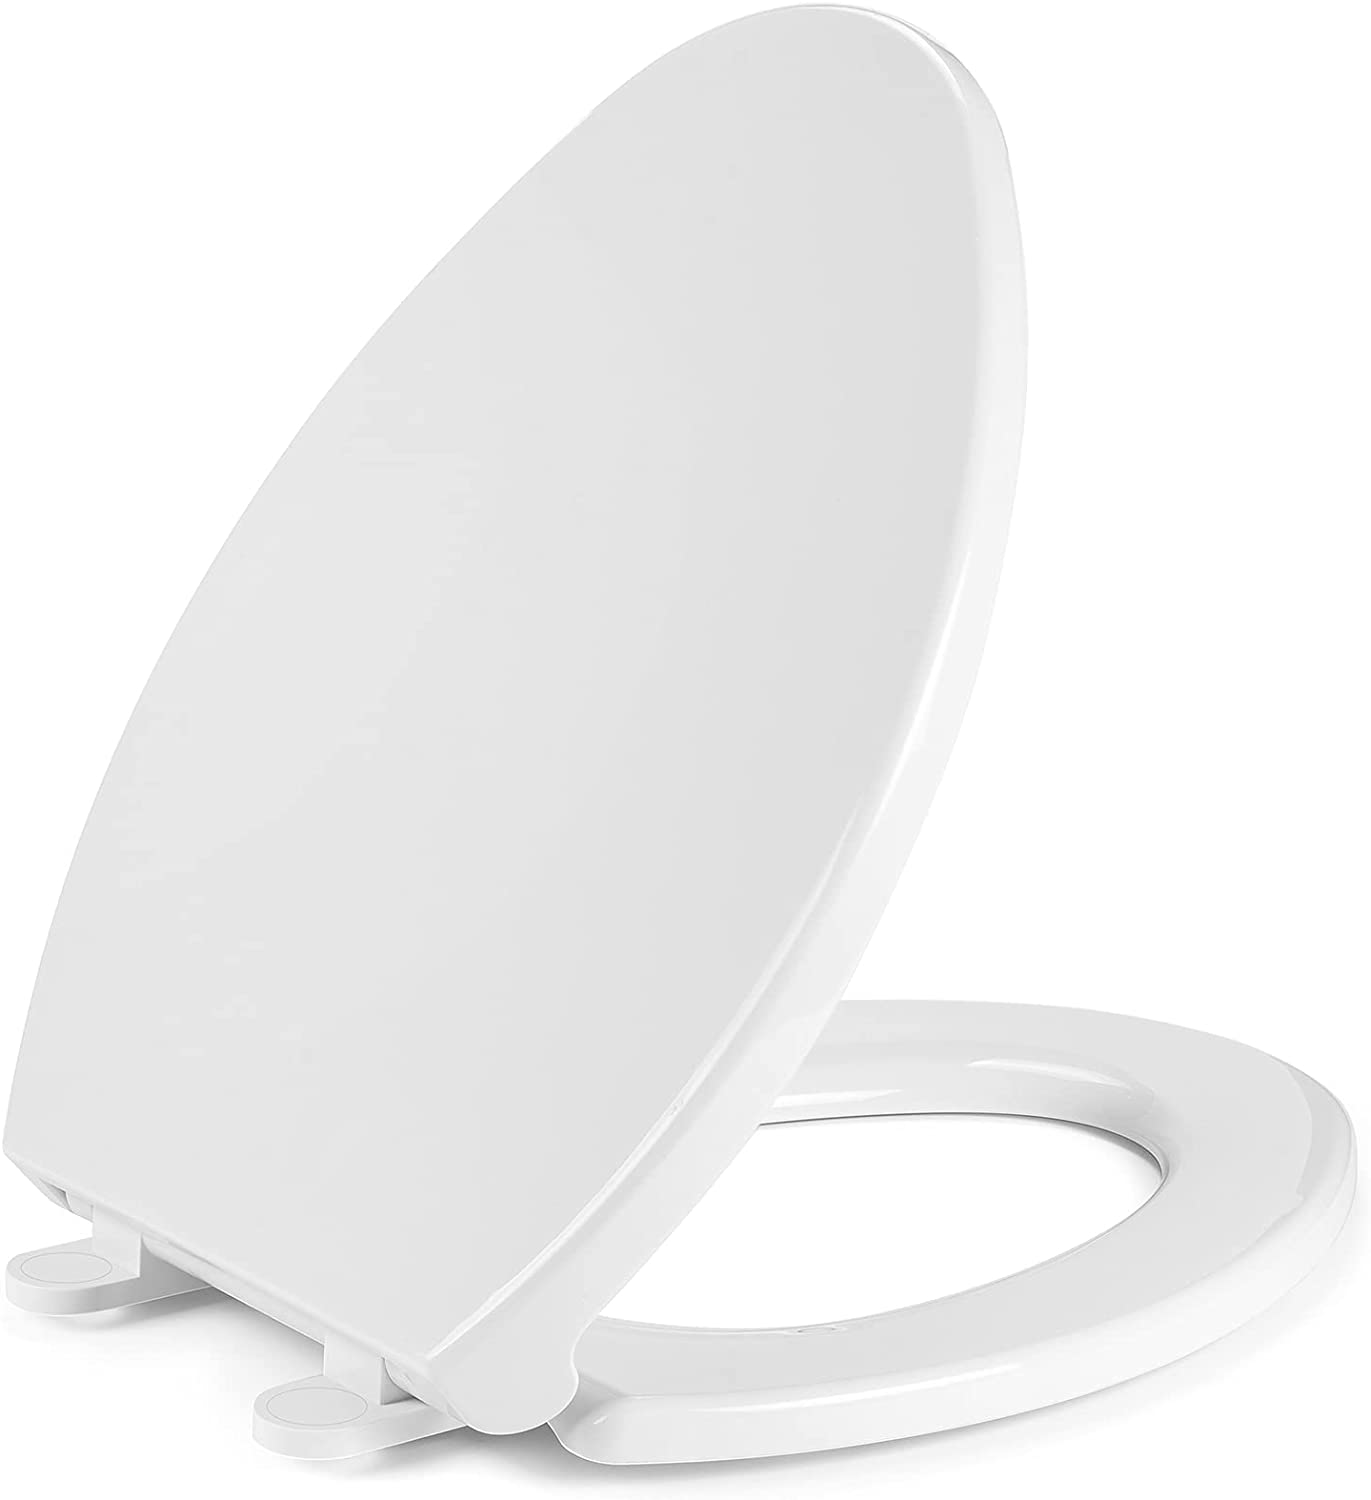 4. Retrolife Elongated Durable seat for Elongated Oval Toilets